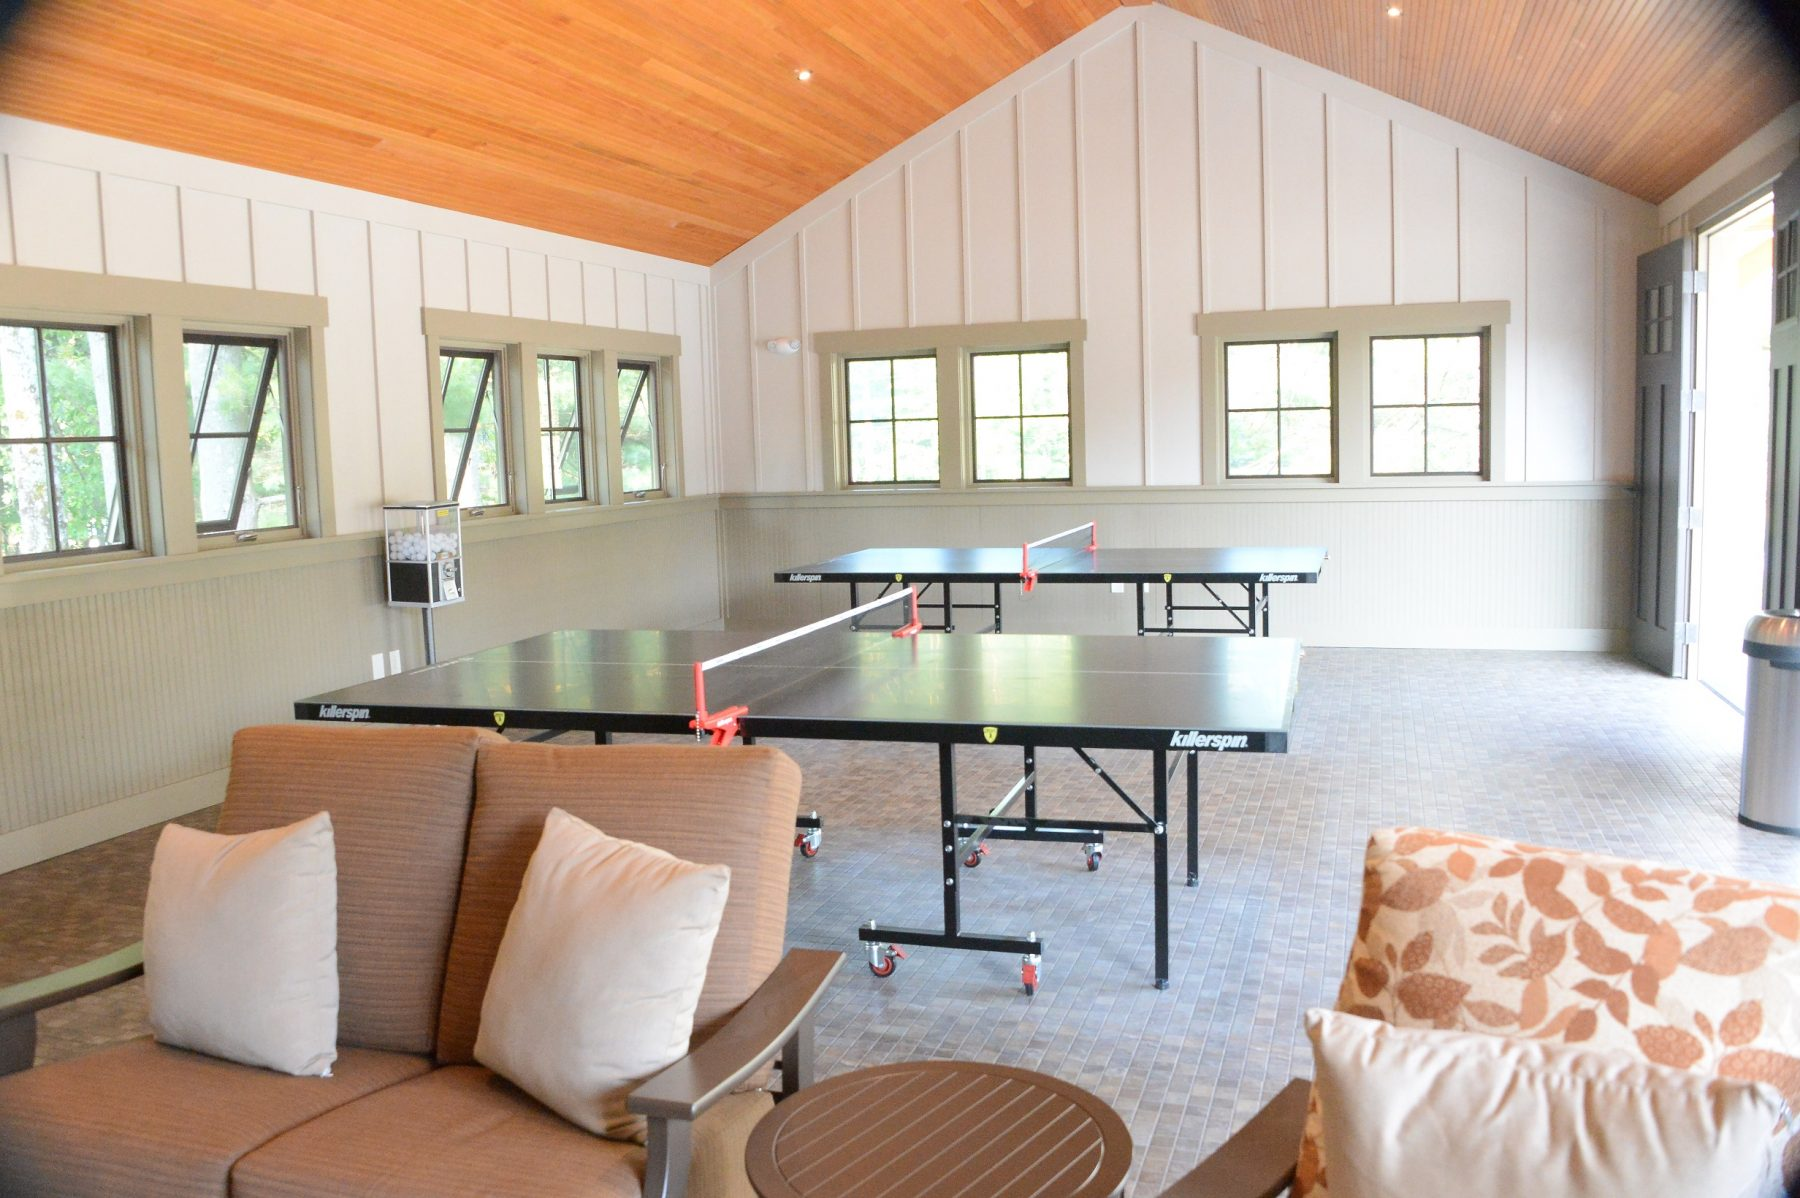 In the acitivty room there are two ping pong tables in the background of the photo with a ping pong ball dispenser located in between them to the far left. In the foreground of the photo there is a loveseat, a small circular table, and a chair for guests to lounge in.